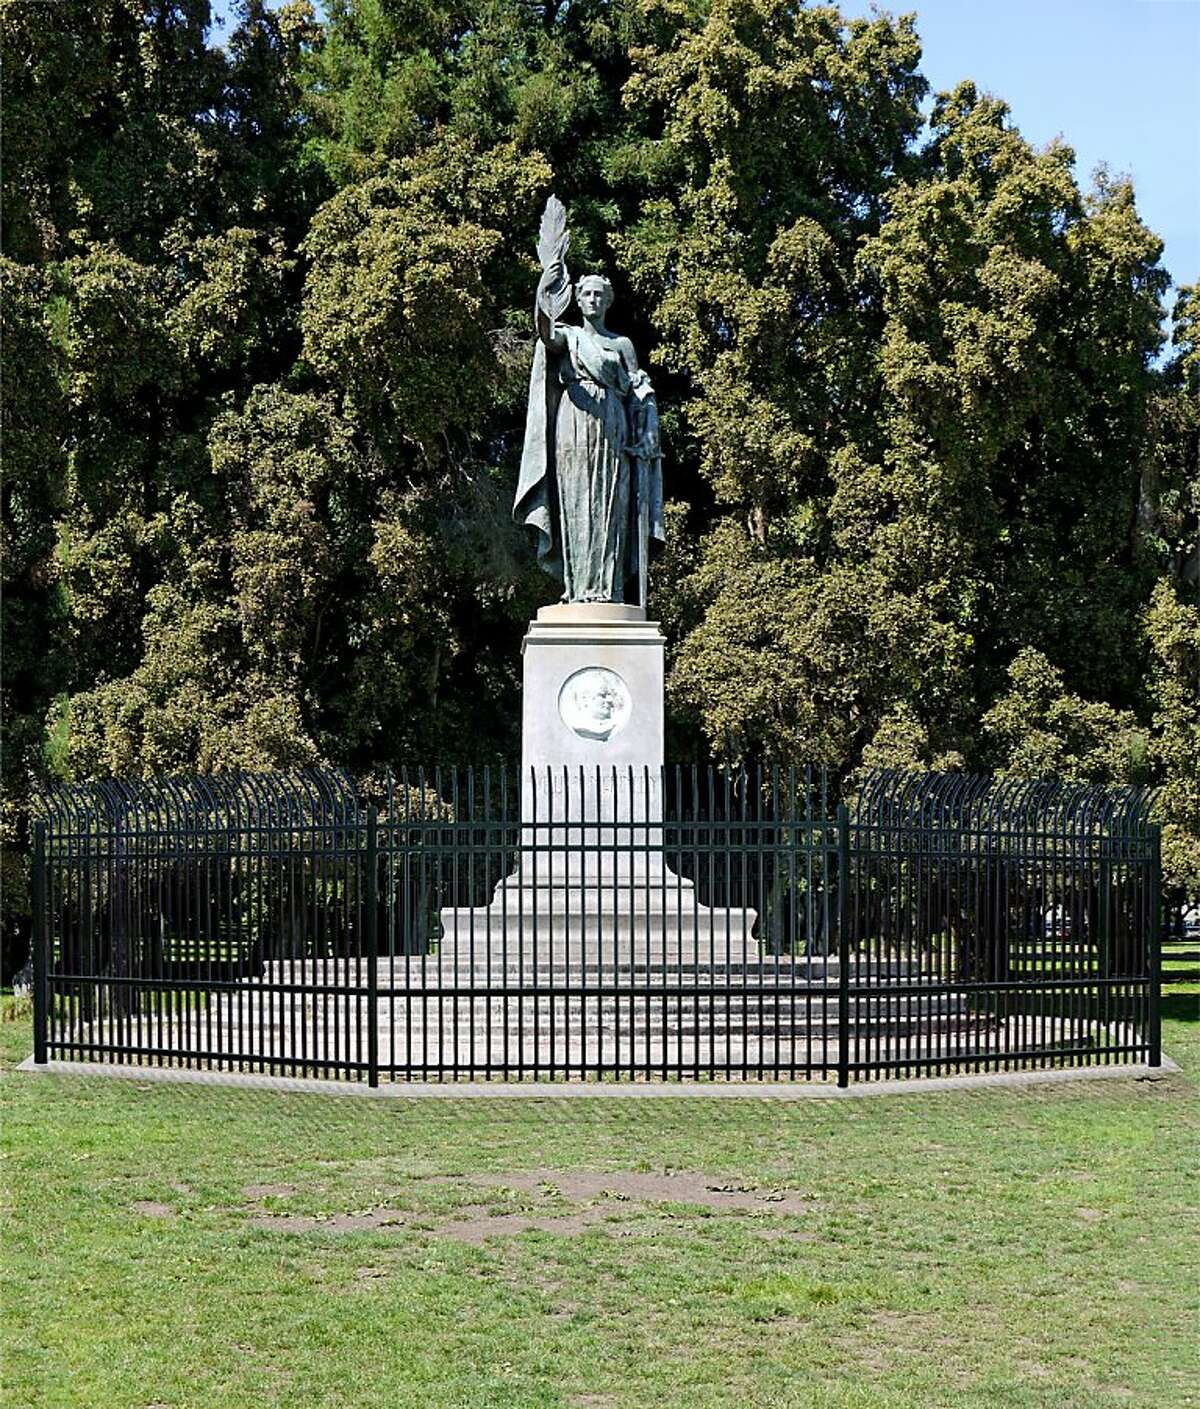 A rendering of the proposed 7-foot iron fence around the McKinley Monument in San Francisco's Golden Gate Park Panhandle.